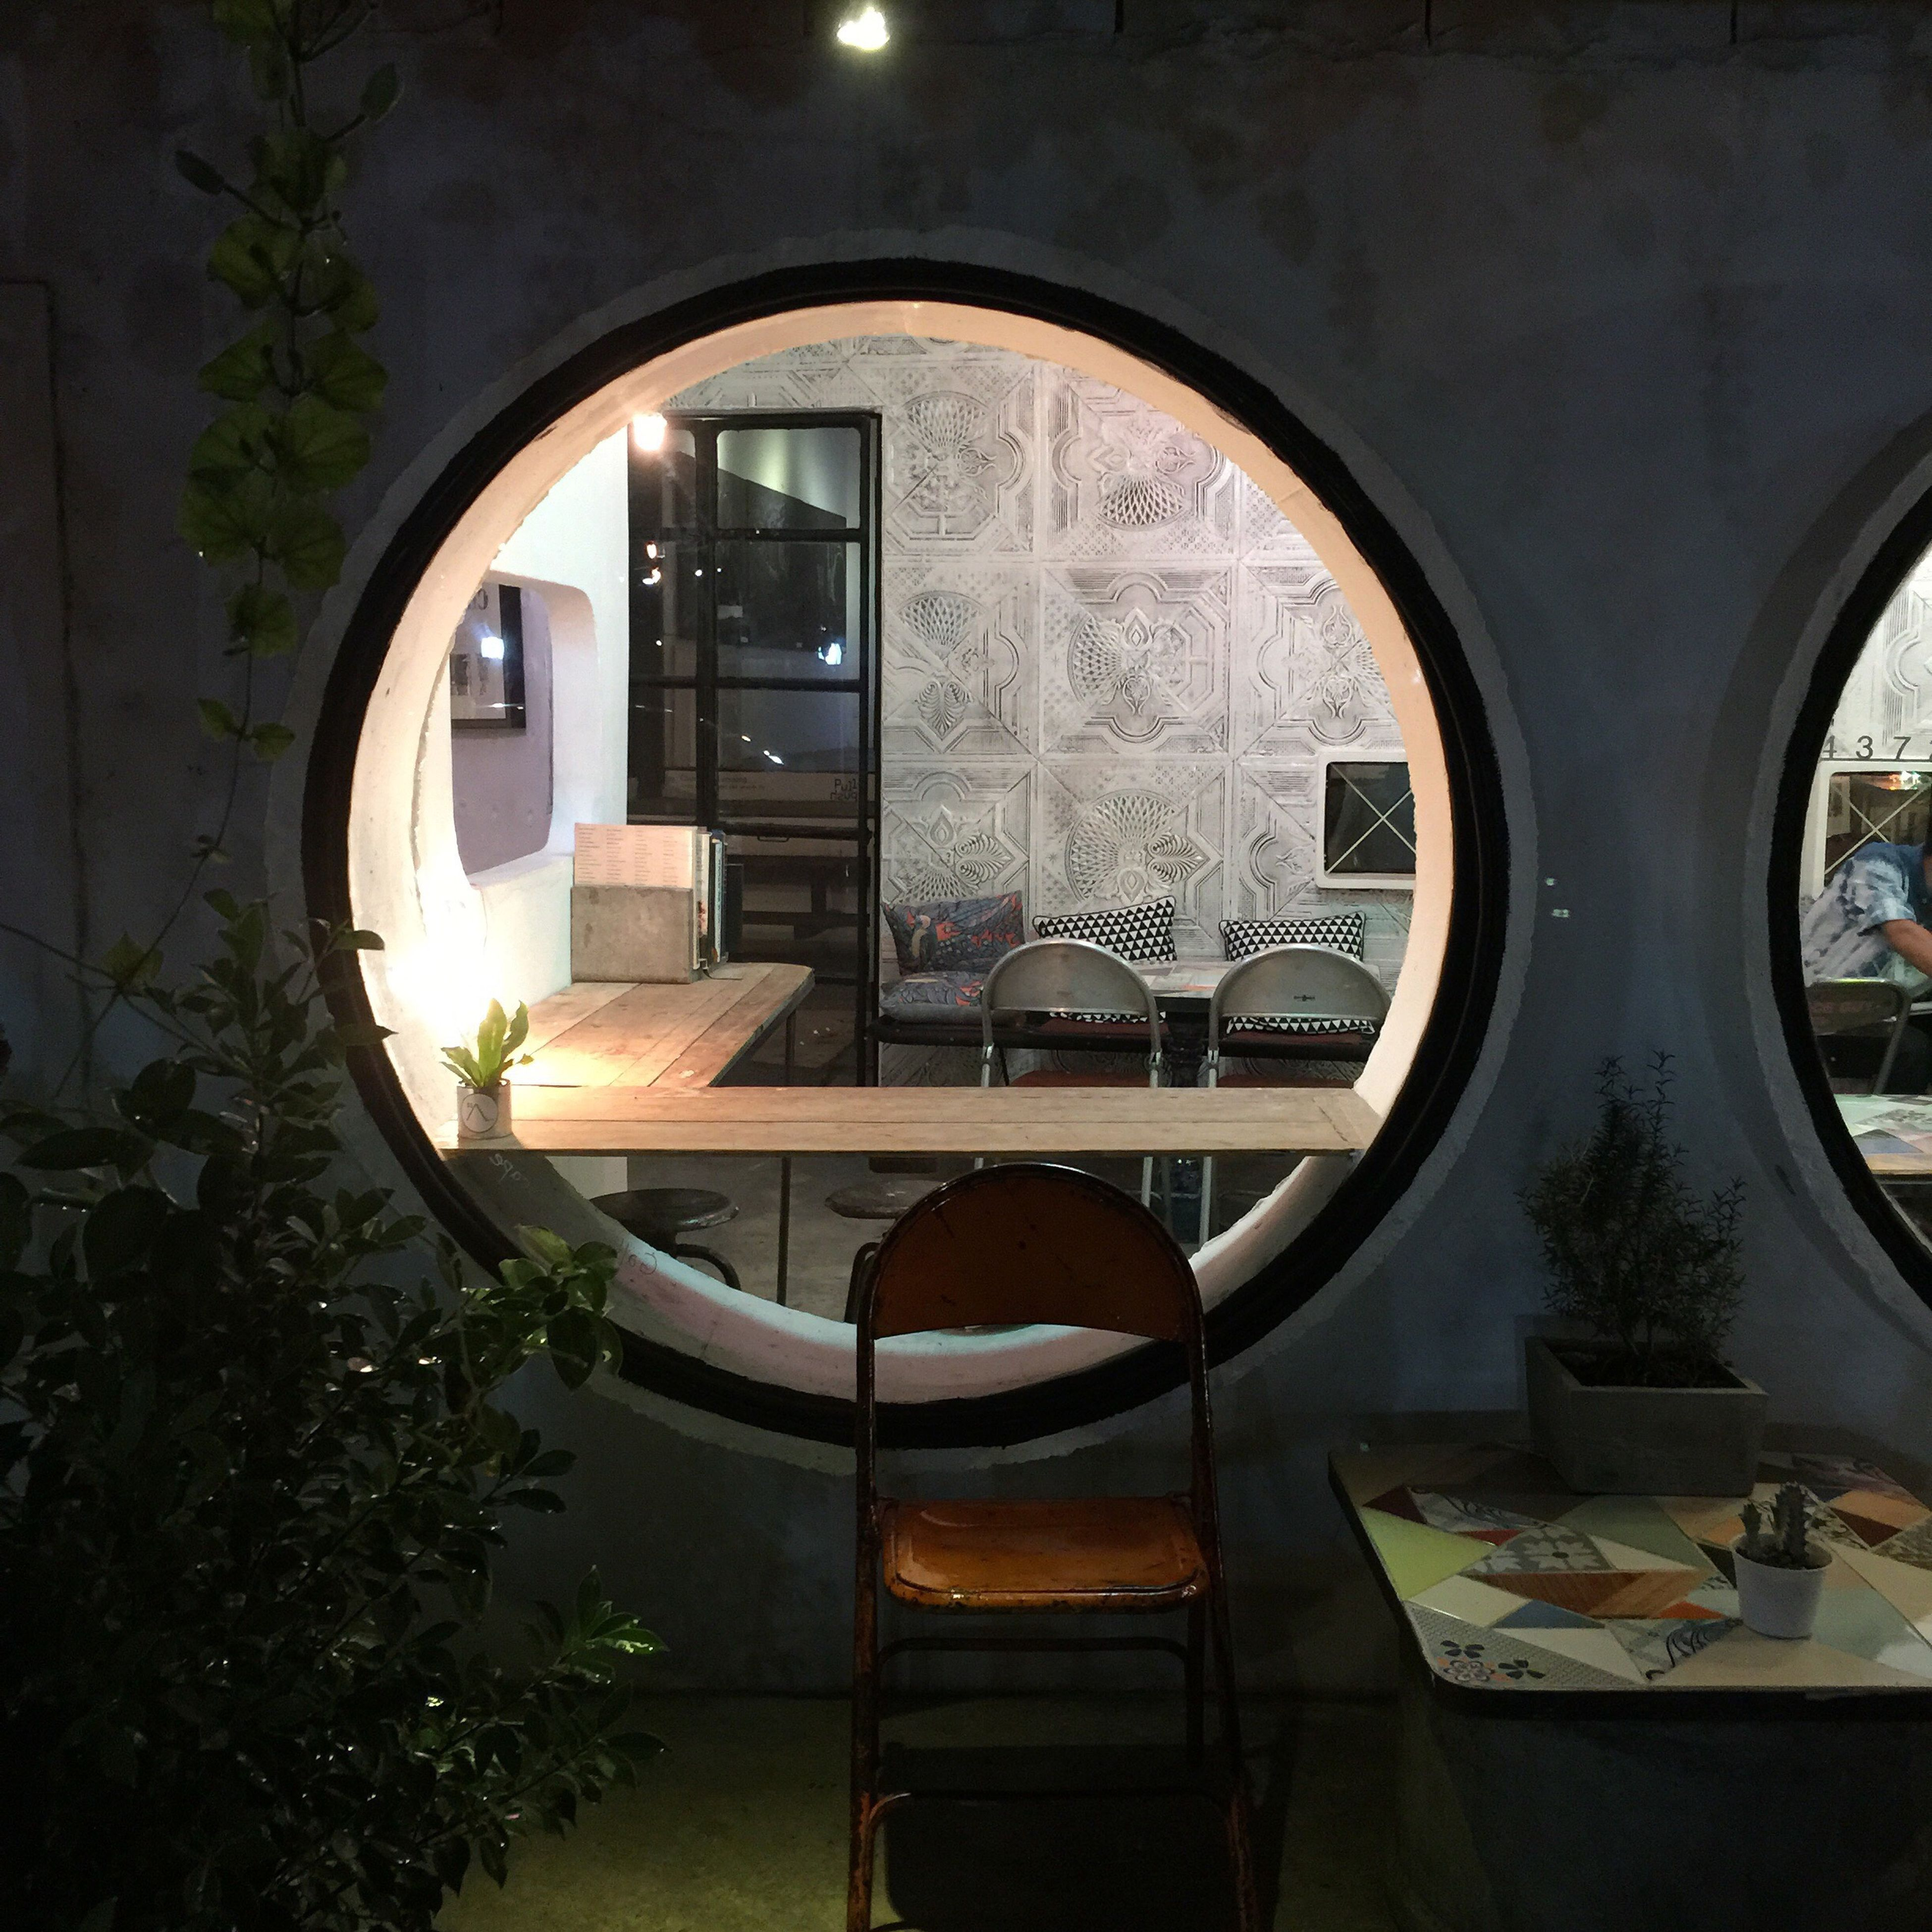 built structure, architecture, indoors, window, arch, reflection, building exterior, glass - material, sunlight, no people, building, house, day, tree, circle, transparent, transportation, mirror, car, interior